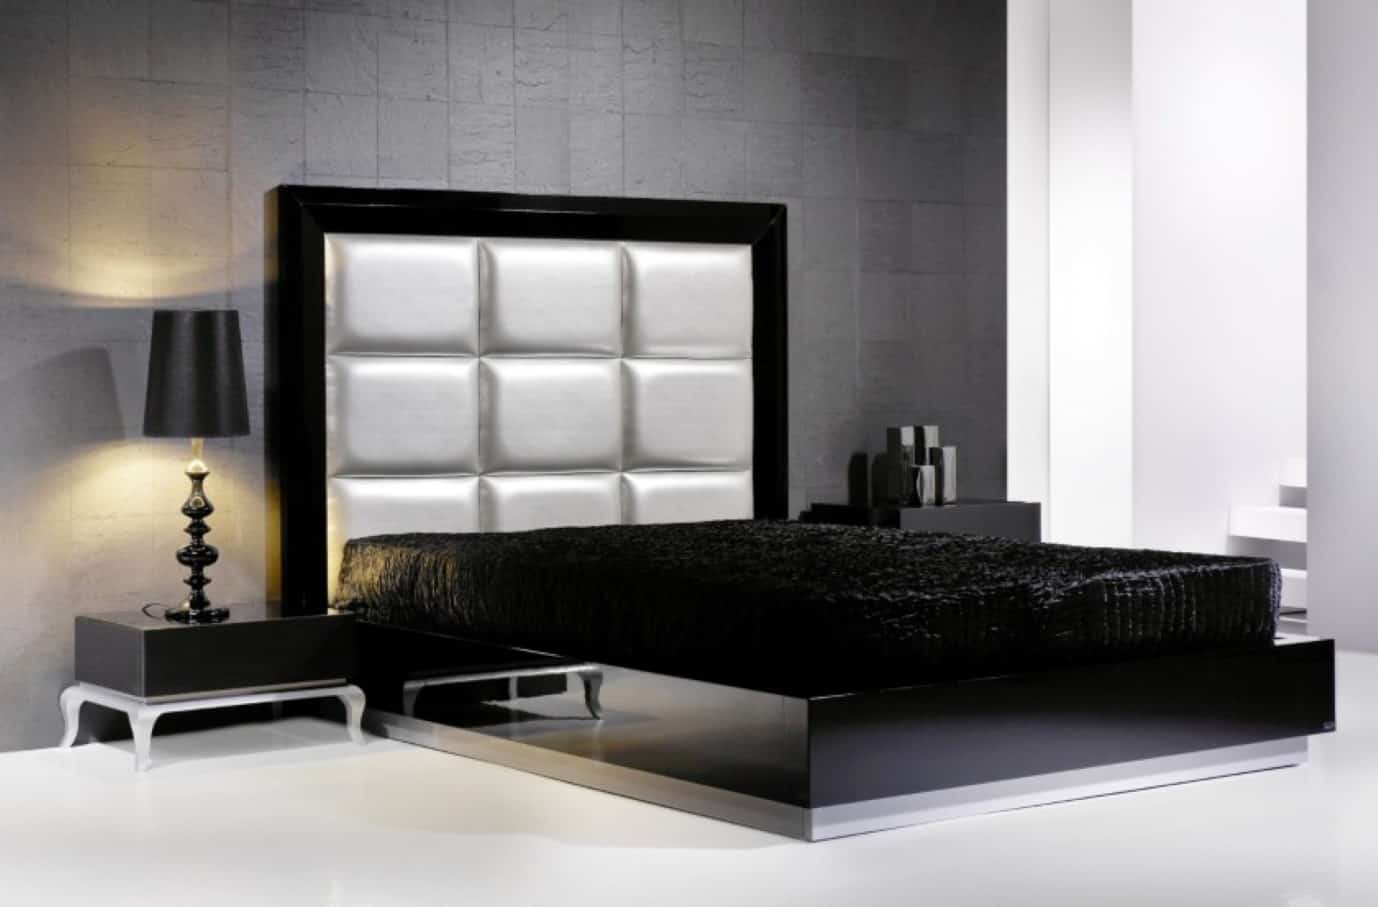 modern-leather-headboard-black-queen-size-bed-frame-stunning-bedroom-with-grey-walls-and-black-furniture-black-bedside-table-with-decorative-table-lamp